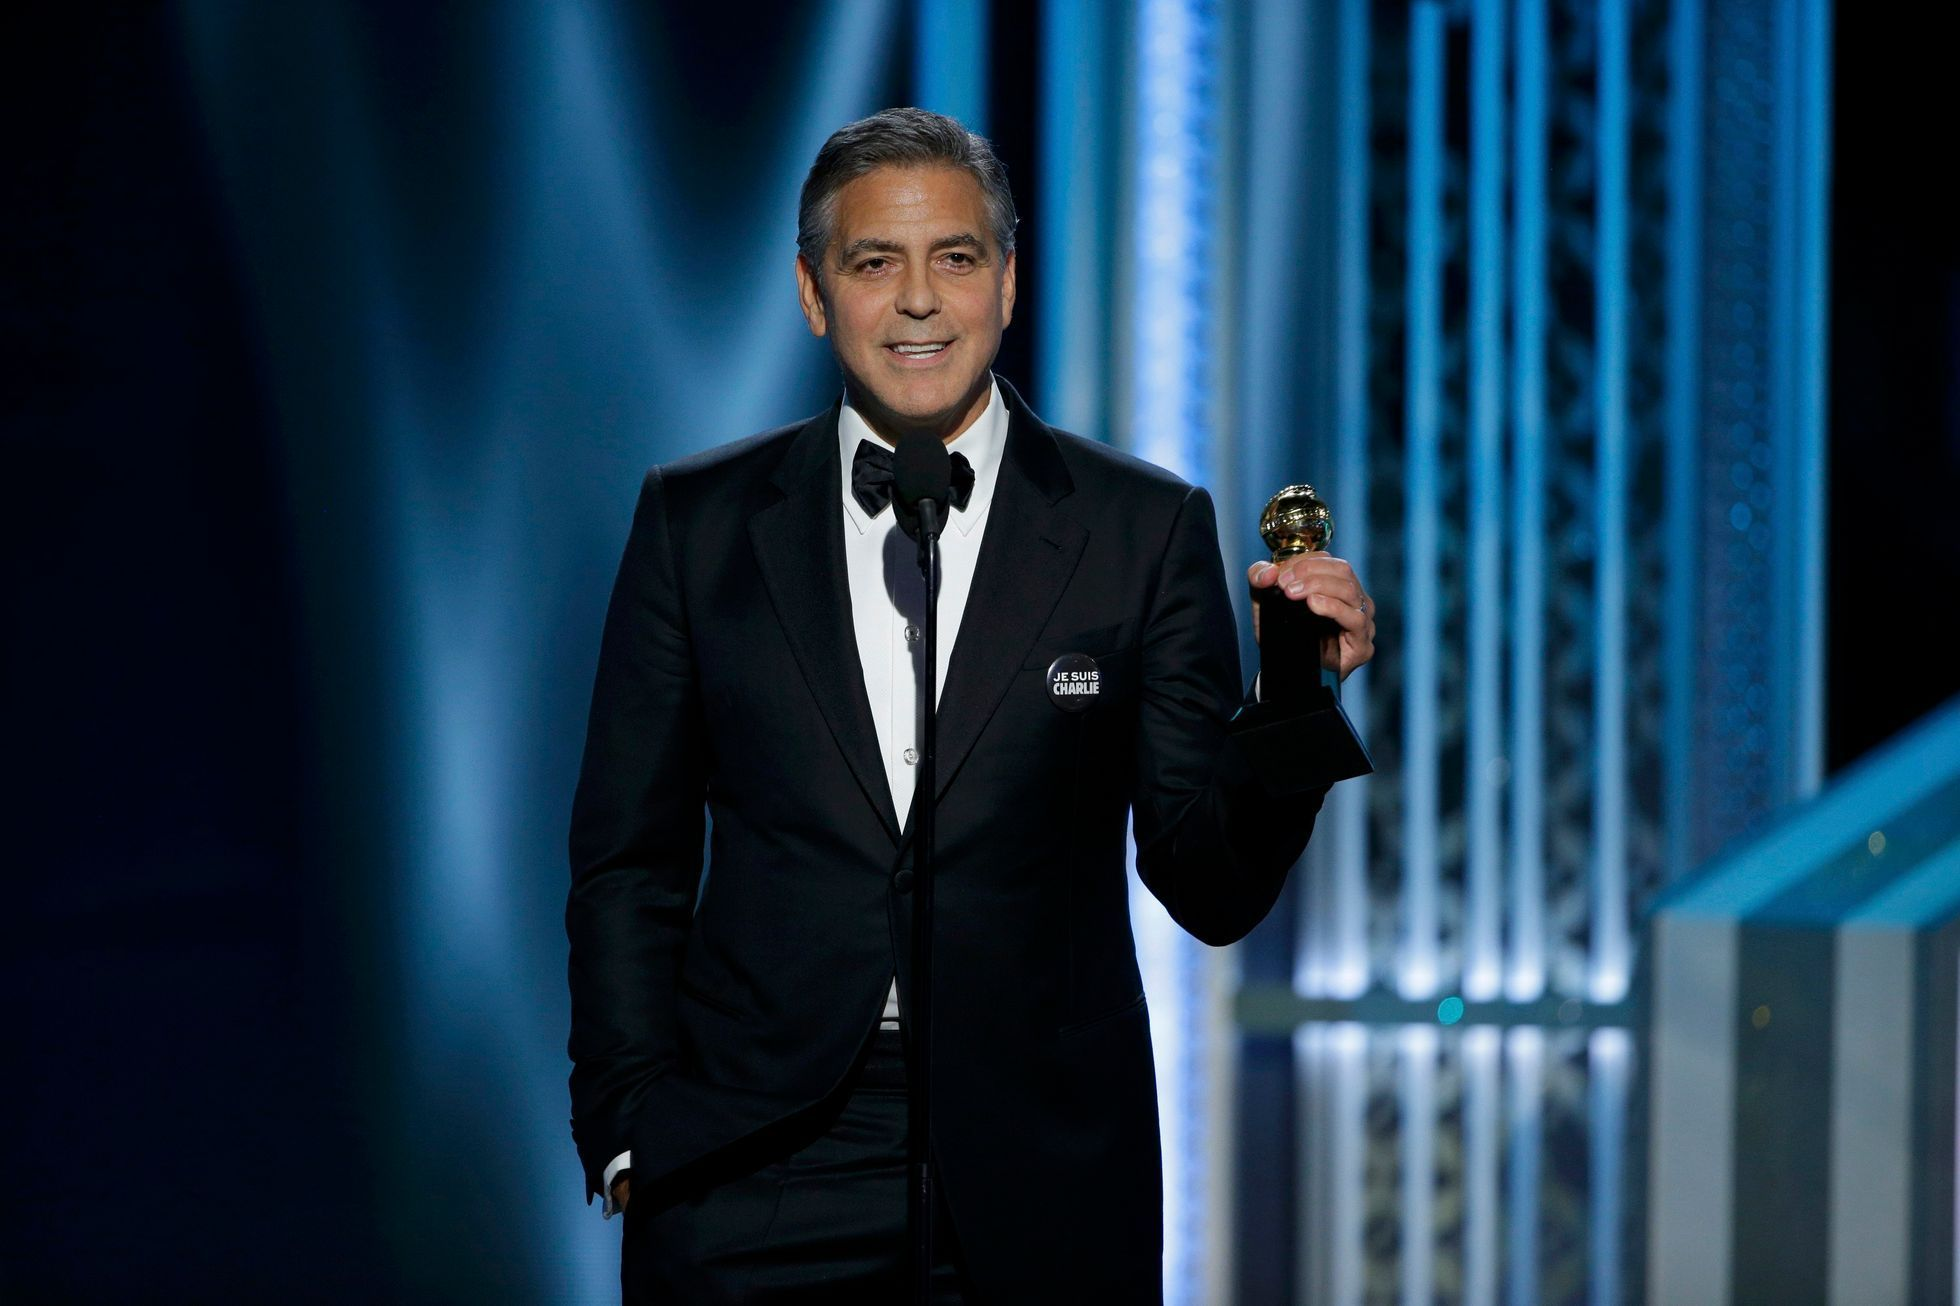 Actor George Clooney accepts the Cecile B. DeMille Award at the 72nd Golden Globe Awards in Beverly Hills